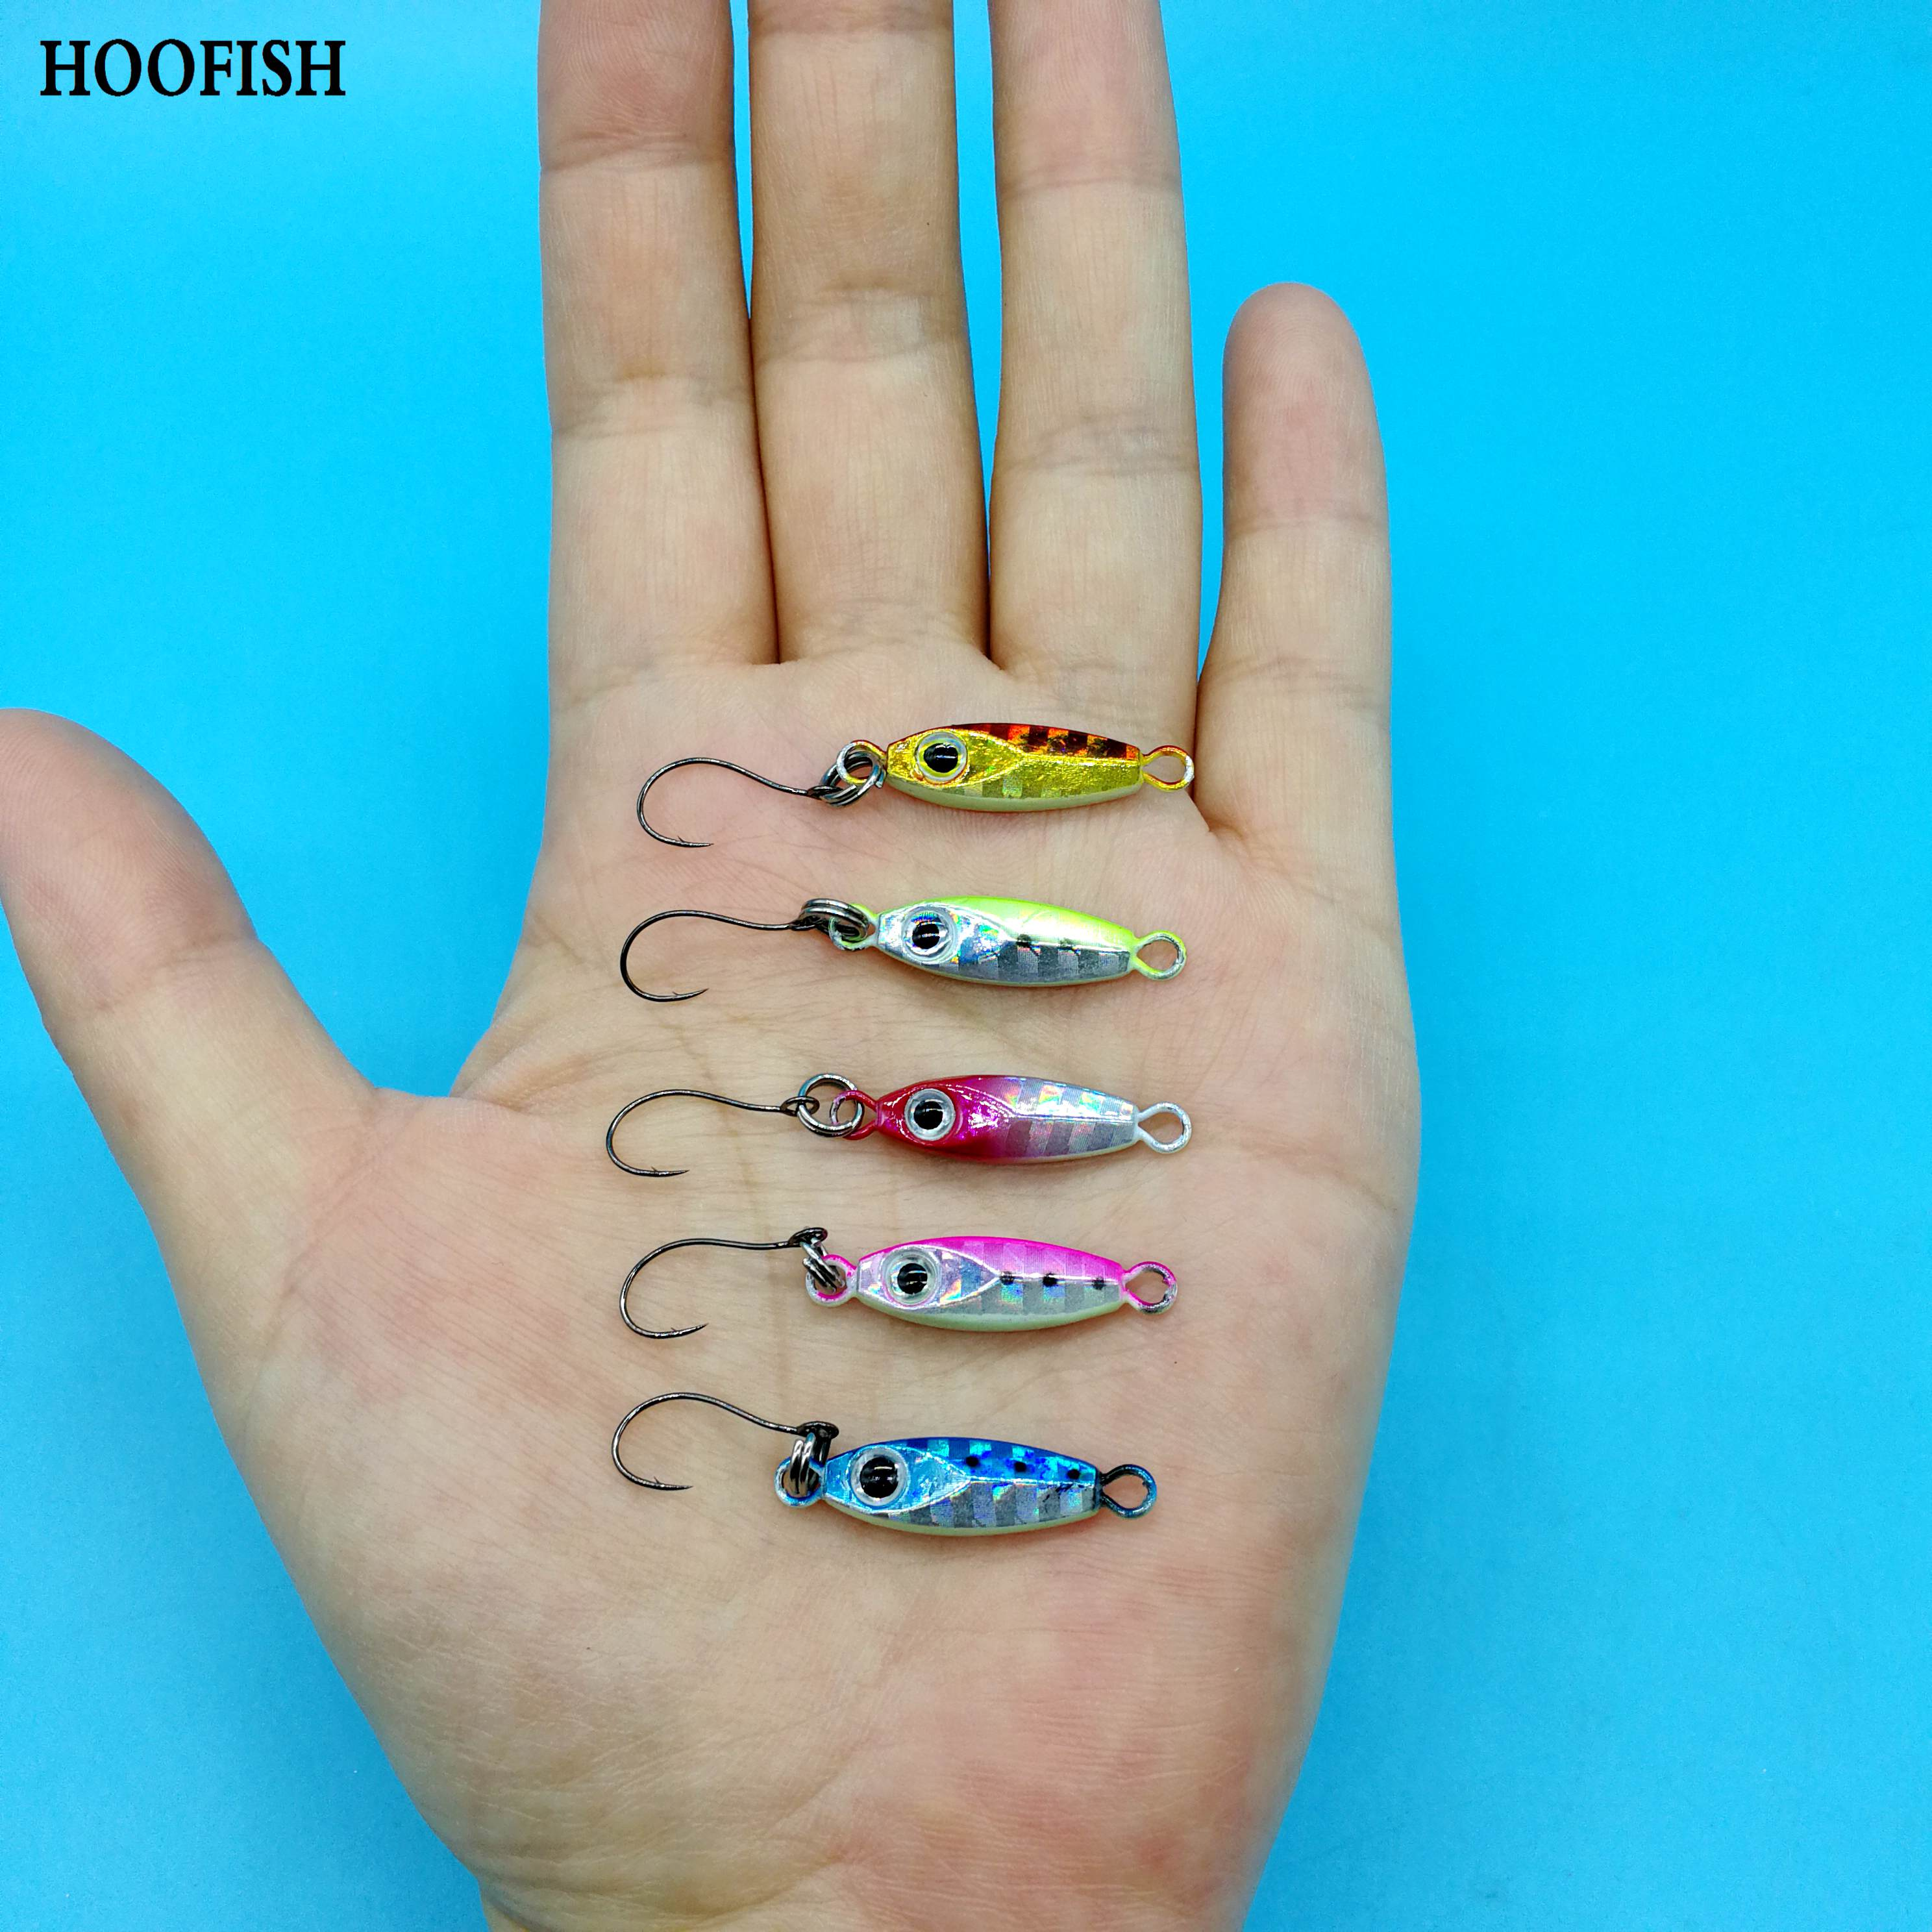 HOOFISH  10PCS/LOT  Metal Jig Spoon Lure  With Single Hook 3g/6g Shore Cast Artificial Hard Bait  Small Jig Lure